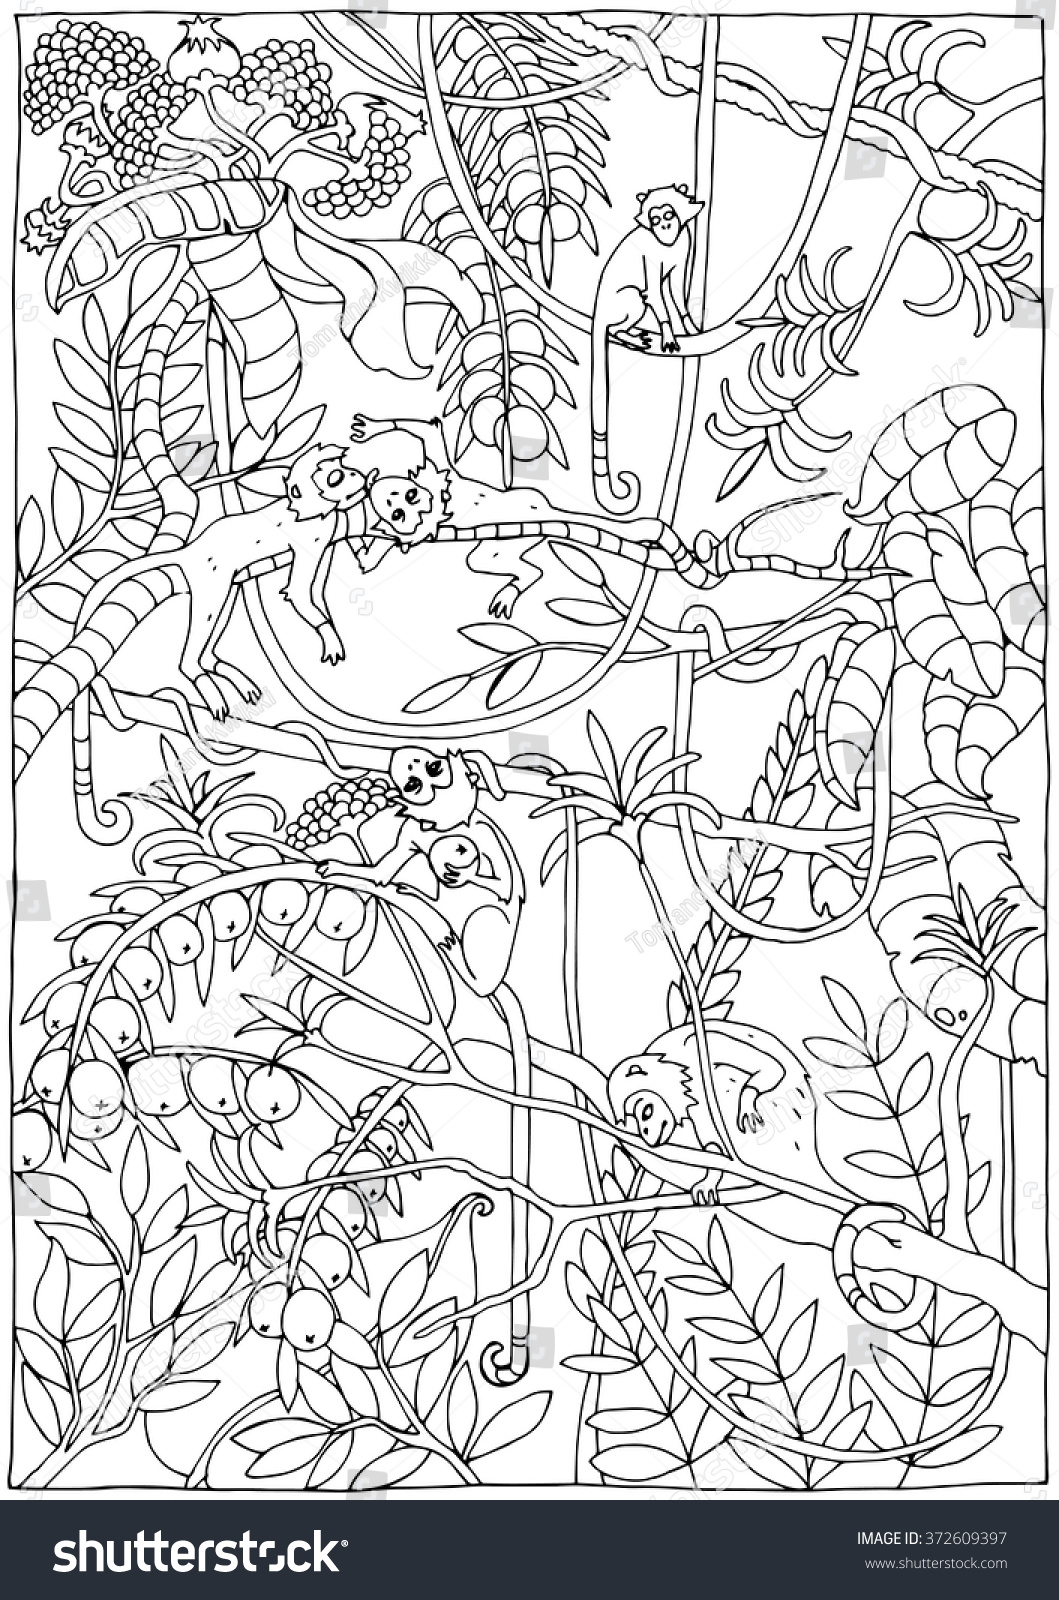 Monkey Jungle Coloring Page Stock Vector 372609397